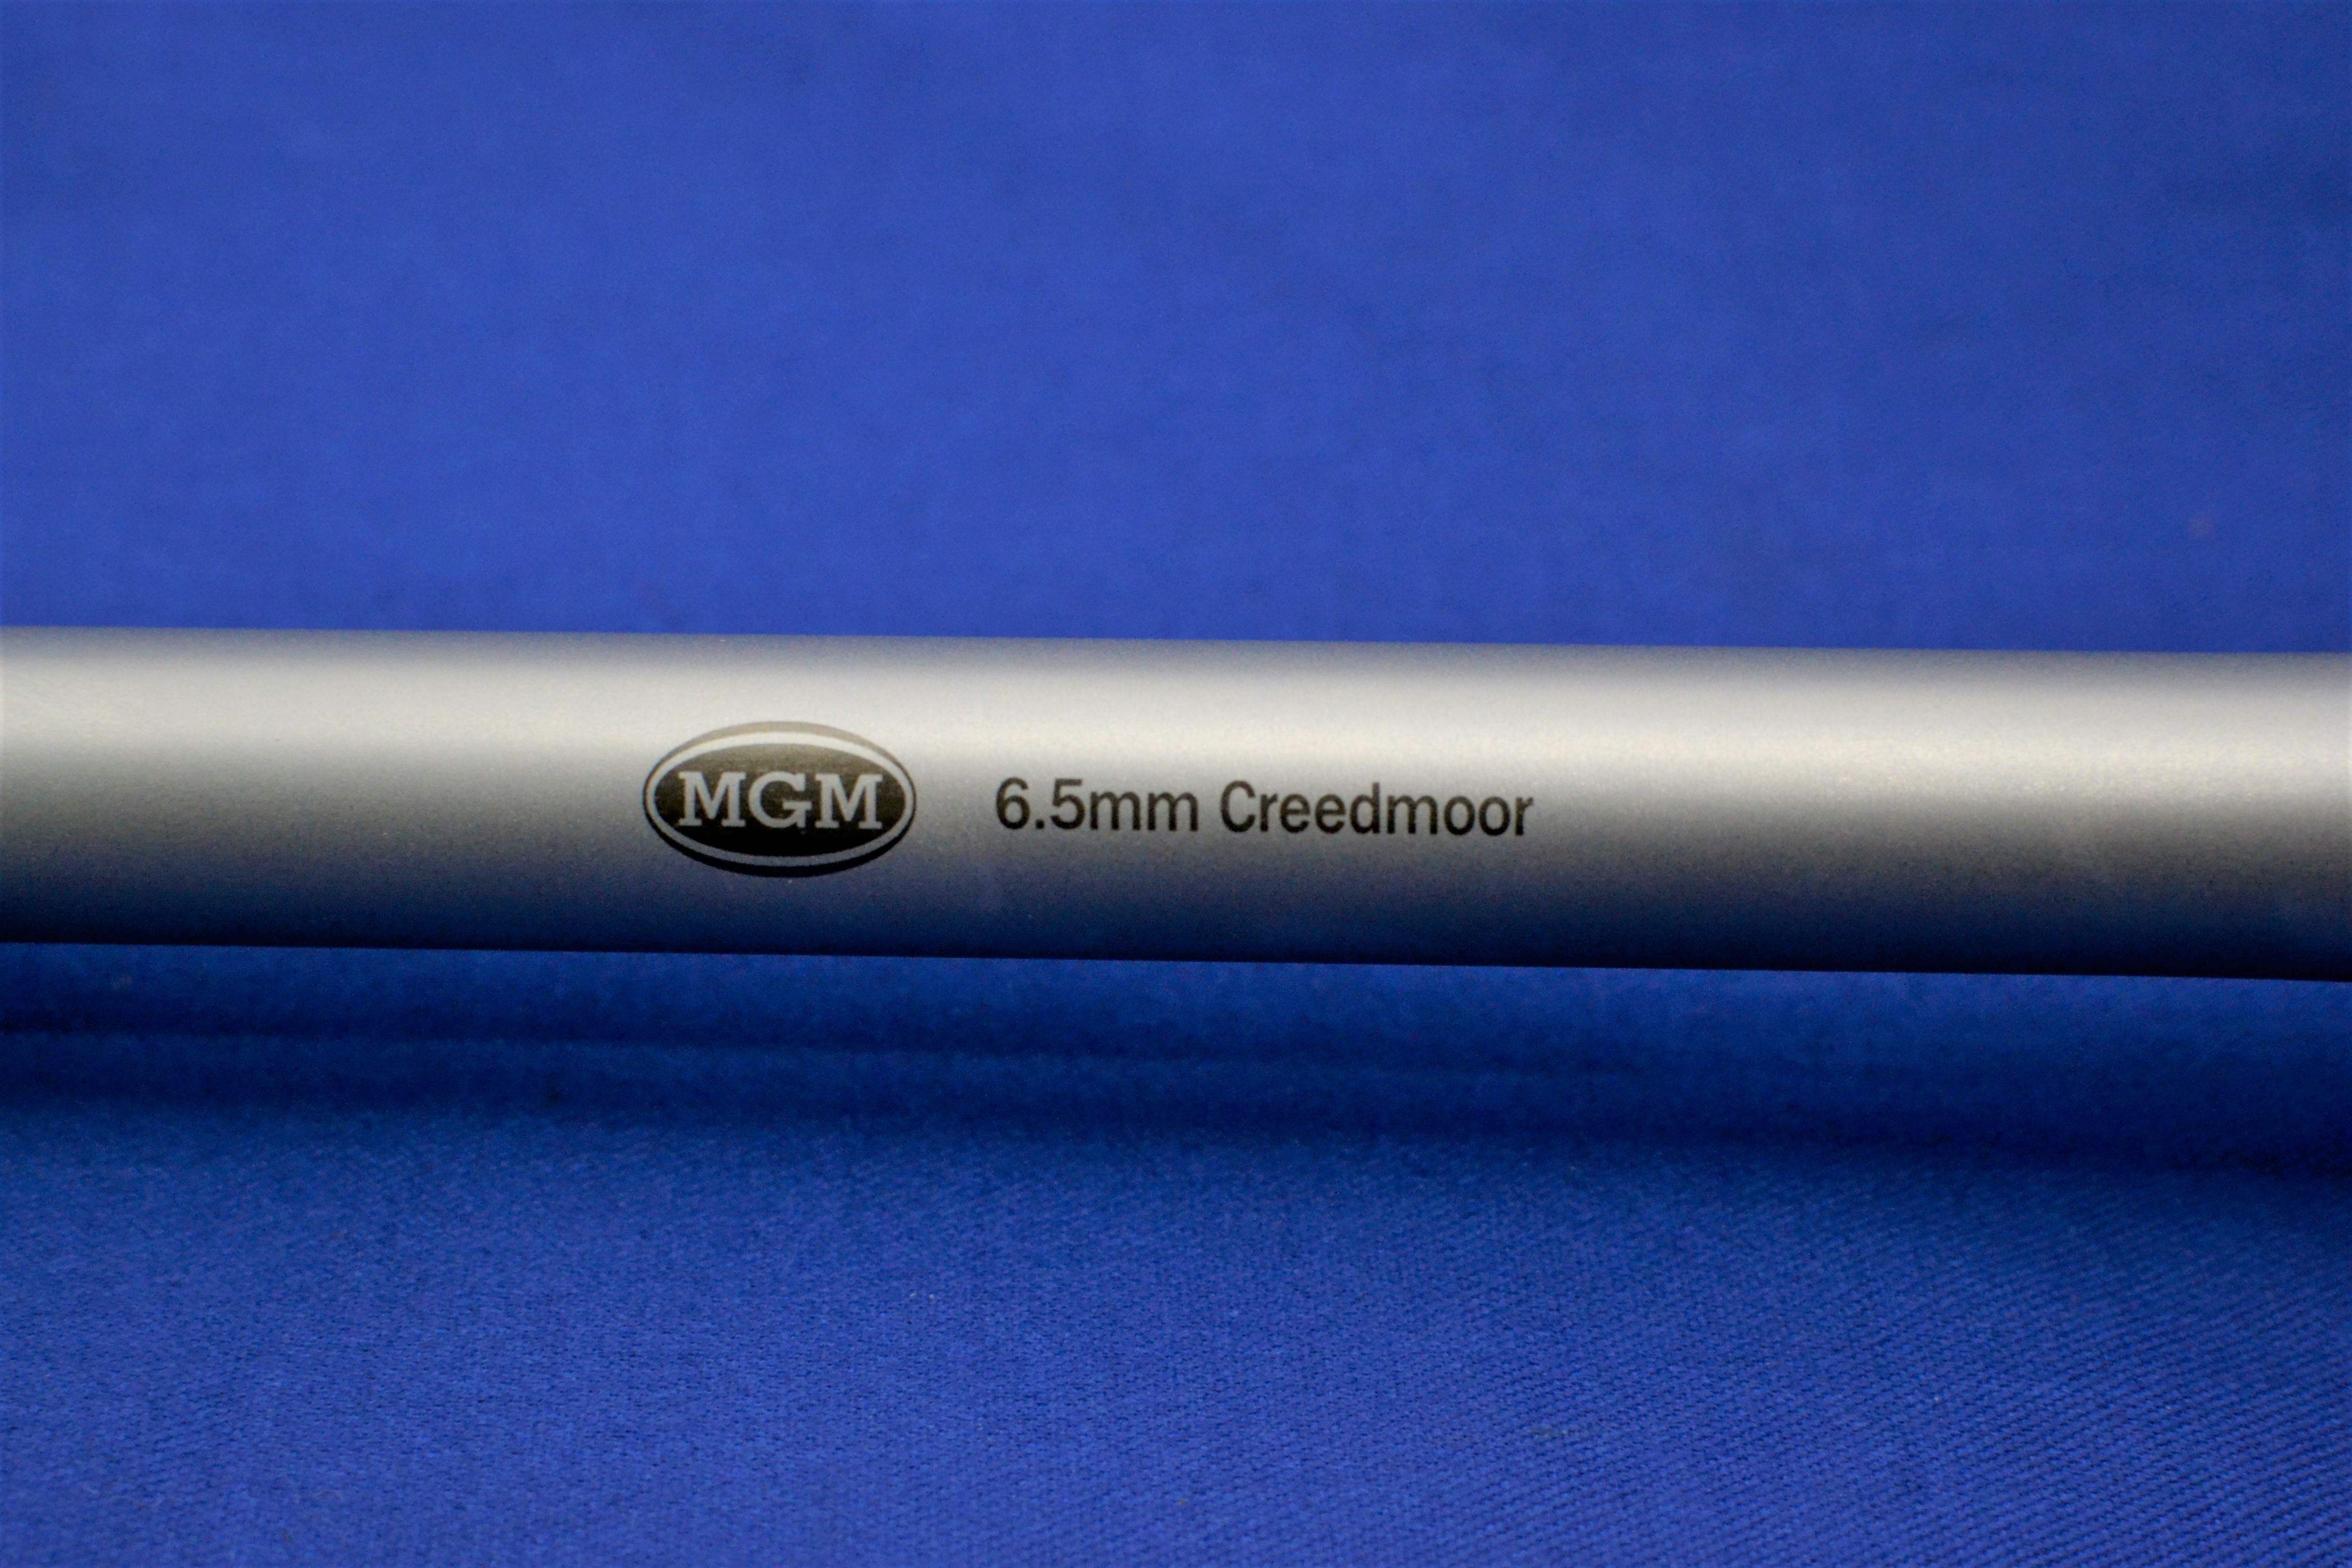 6.5 Creedmoor, Encore, Thompson Center, Match Grade Machine, MGM, Barrels, Stainless Steel, Guns